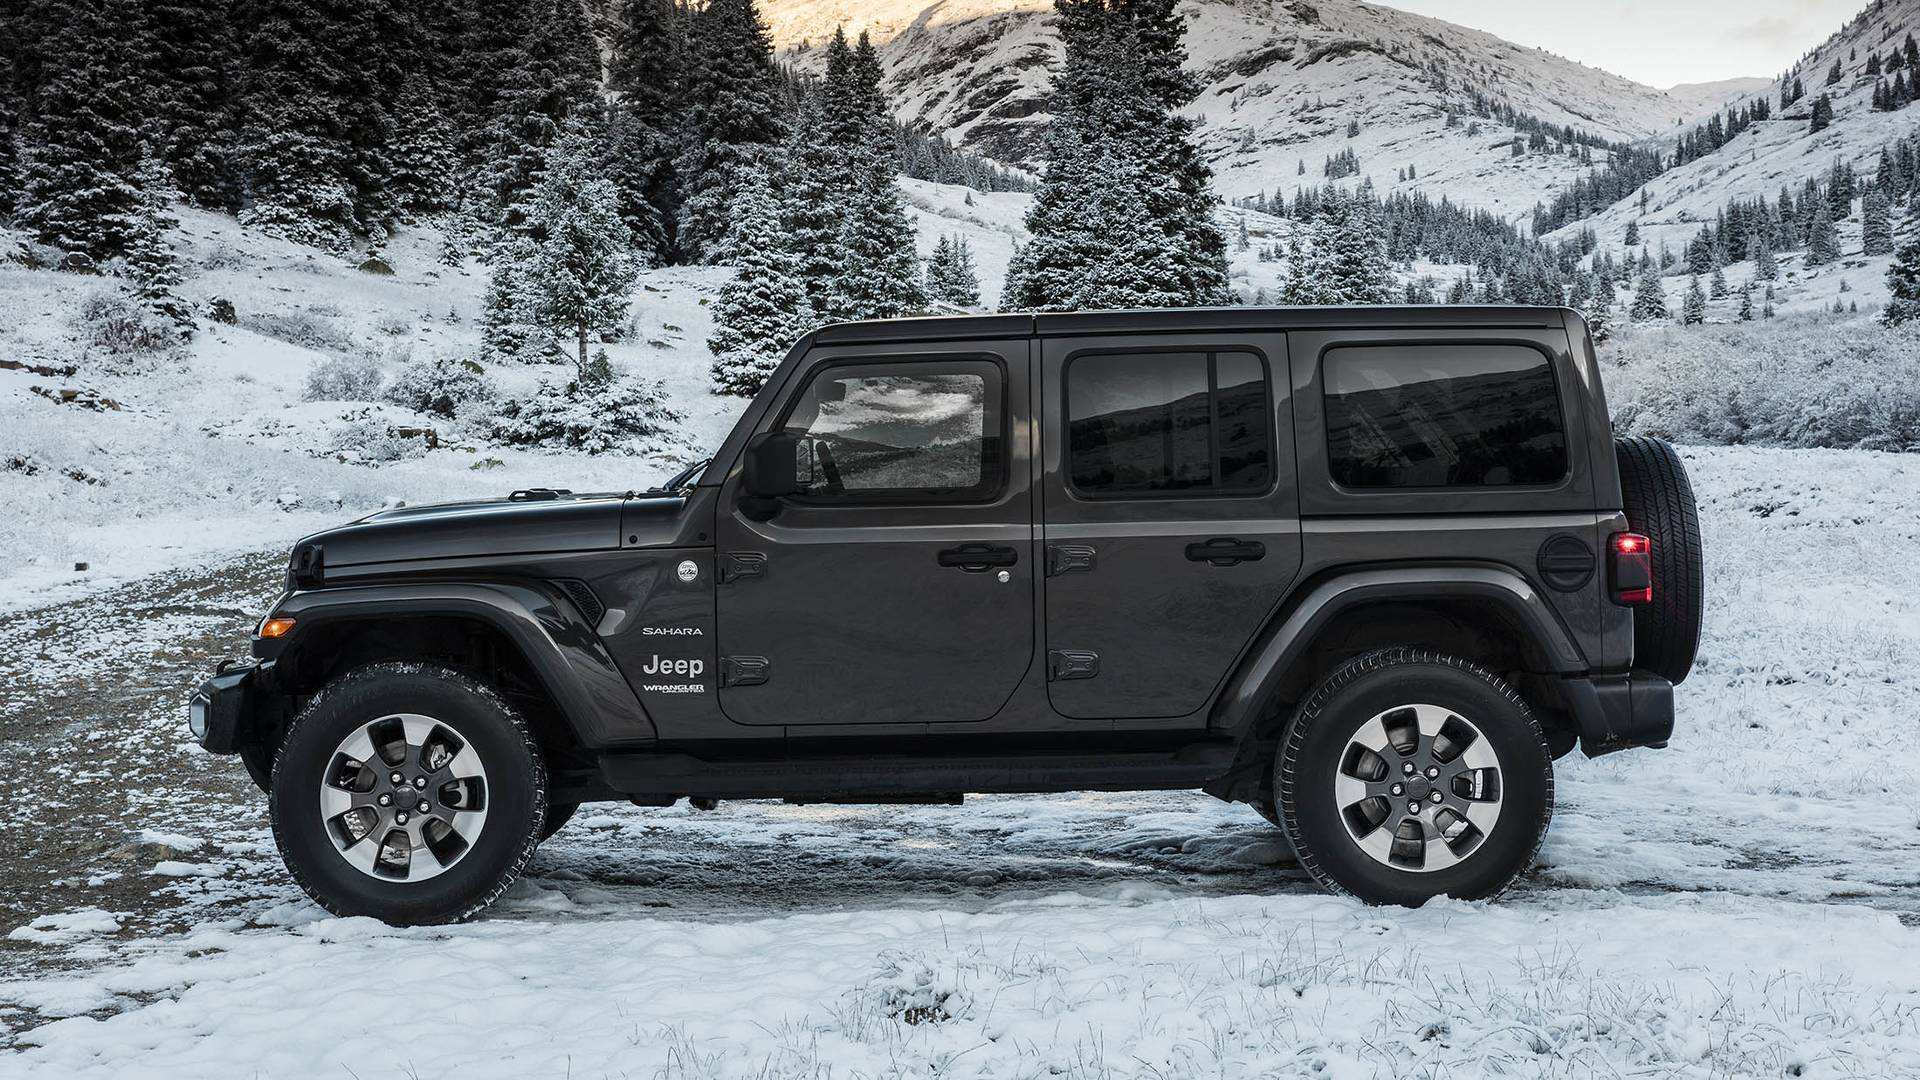 70 Best Review Jeep Hybrid 2020 Price with Jeep Hybrid 2020